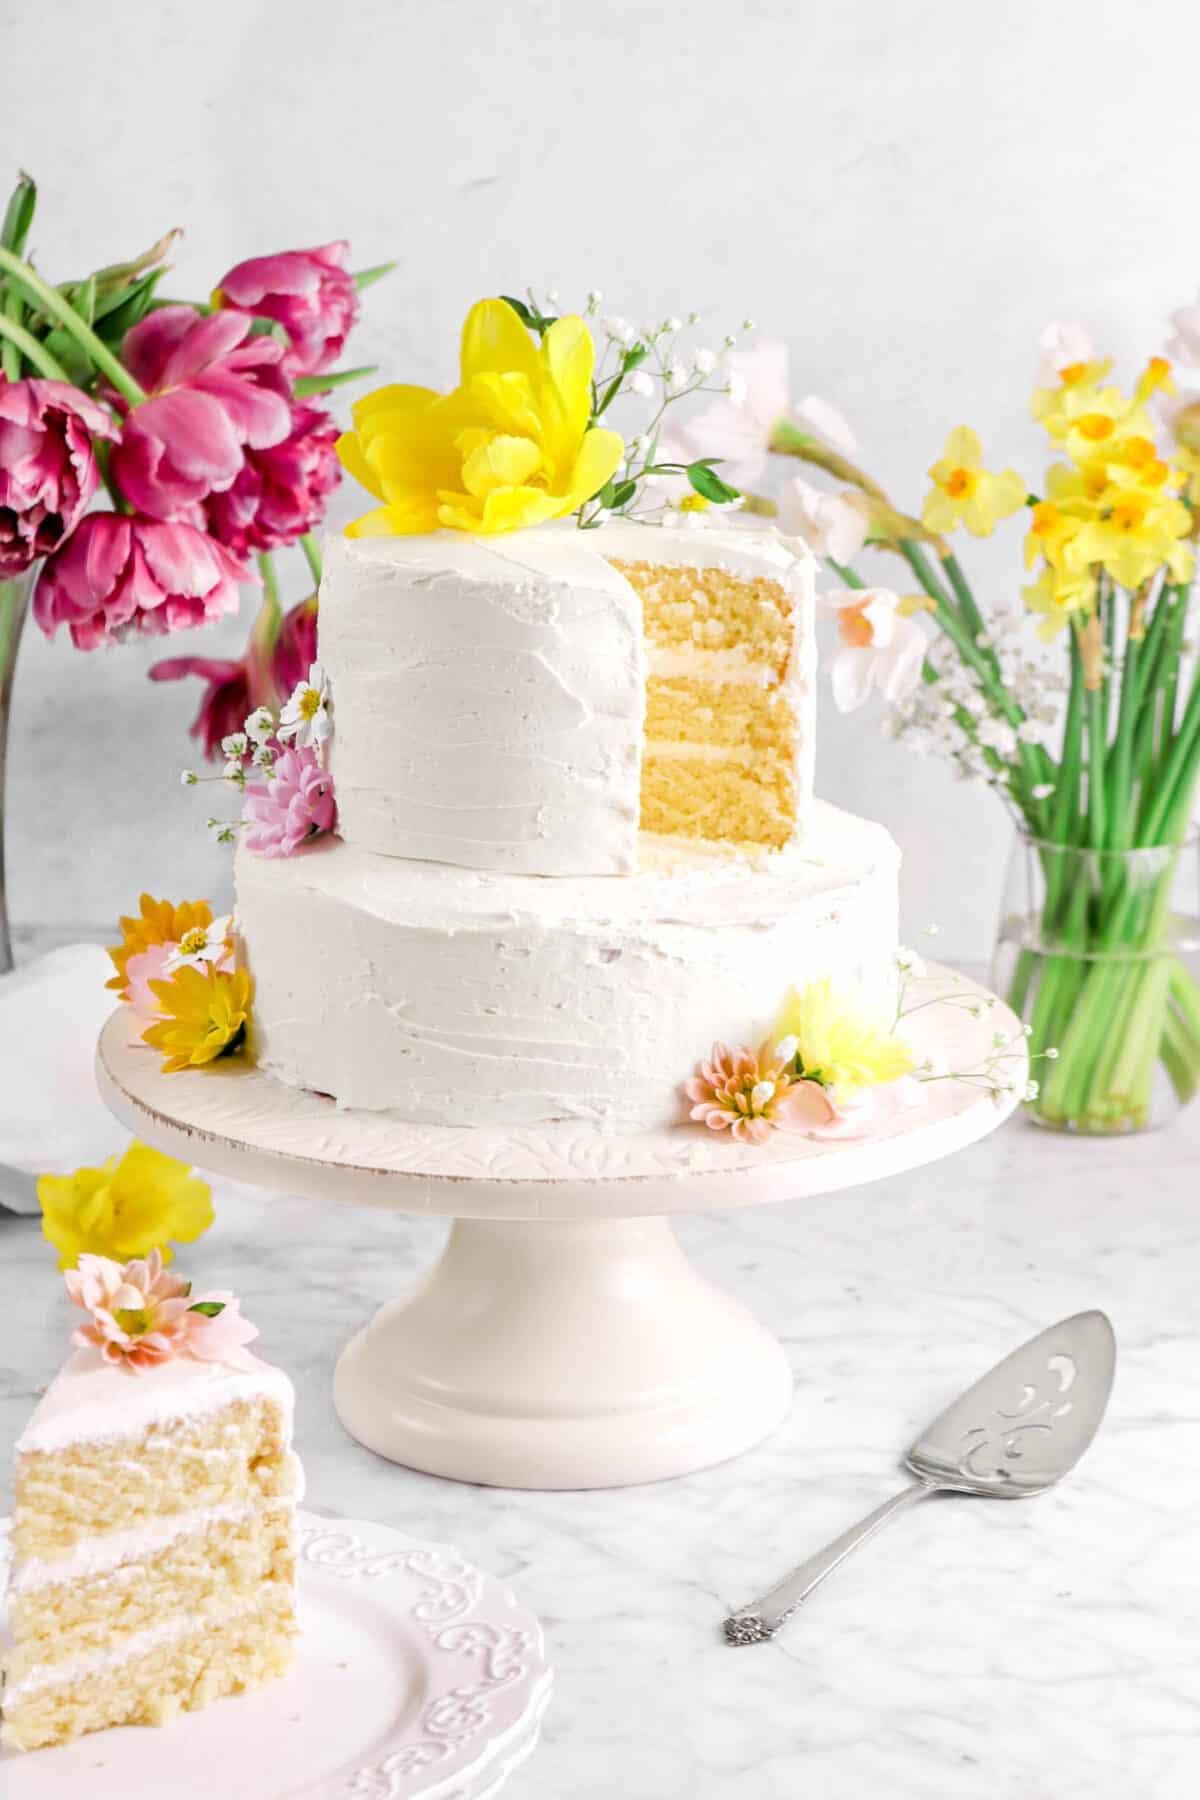 two tier vegan almond cake with flowers, a slice on white plates, and a cake knife